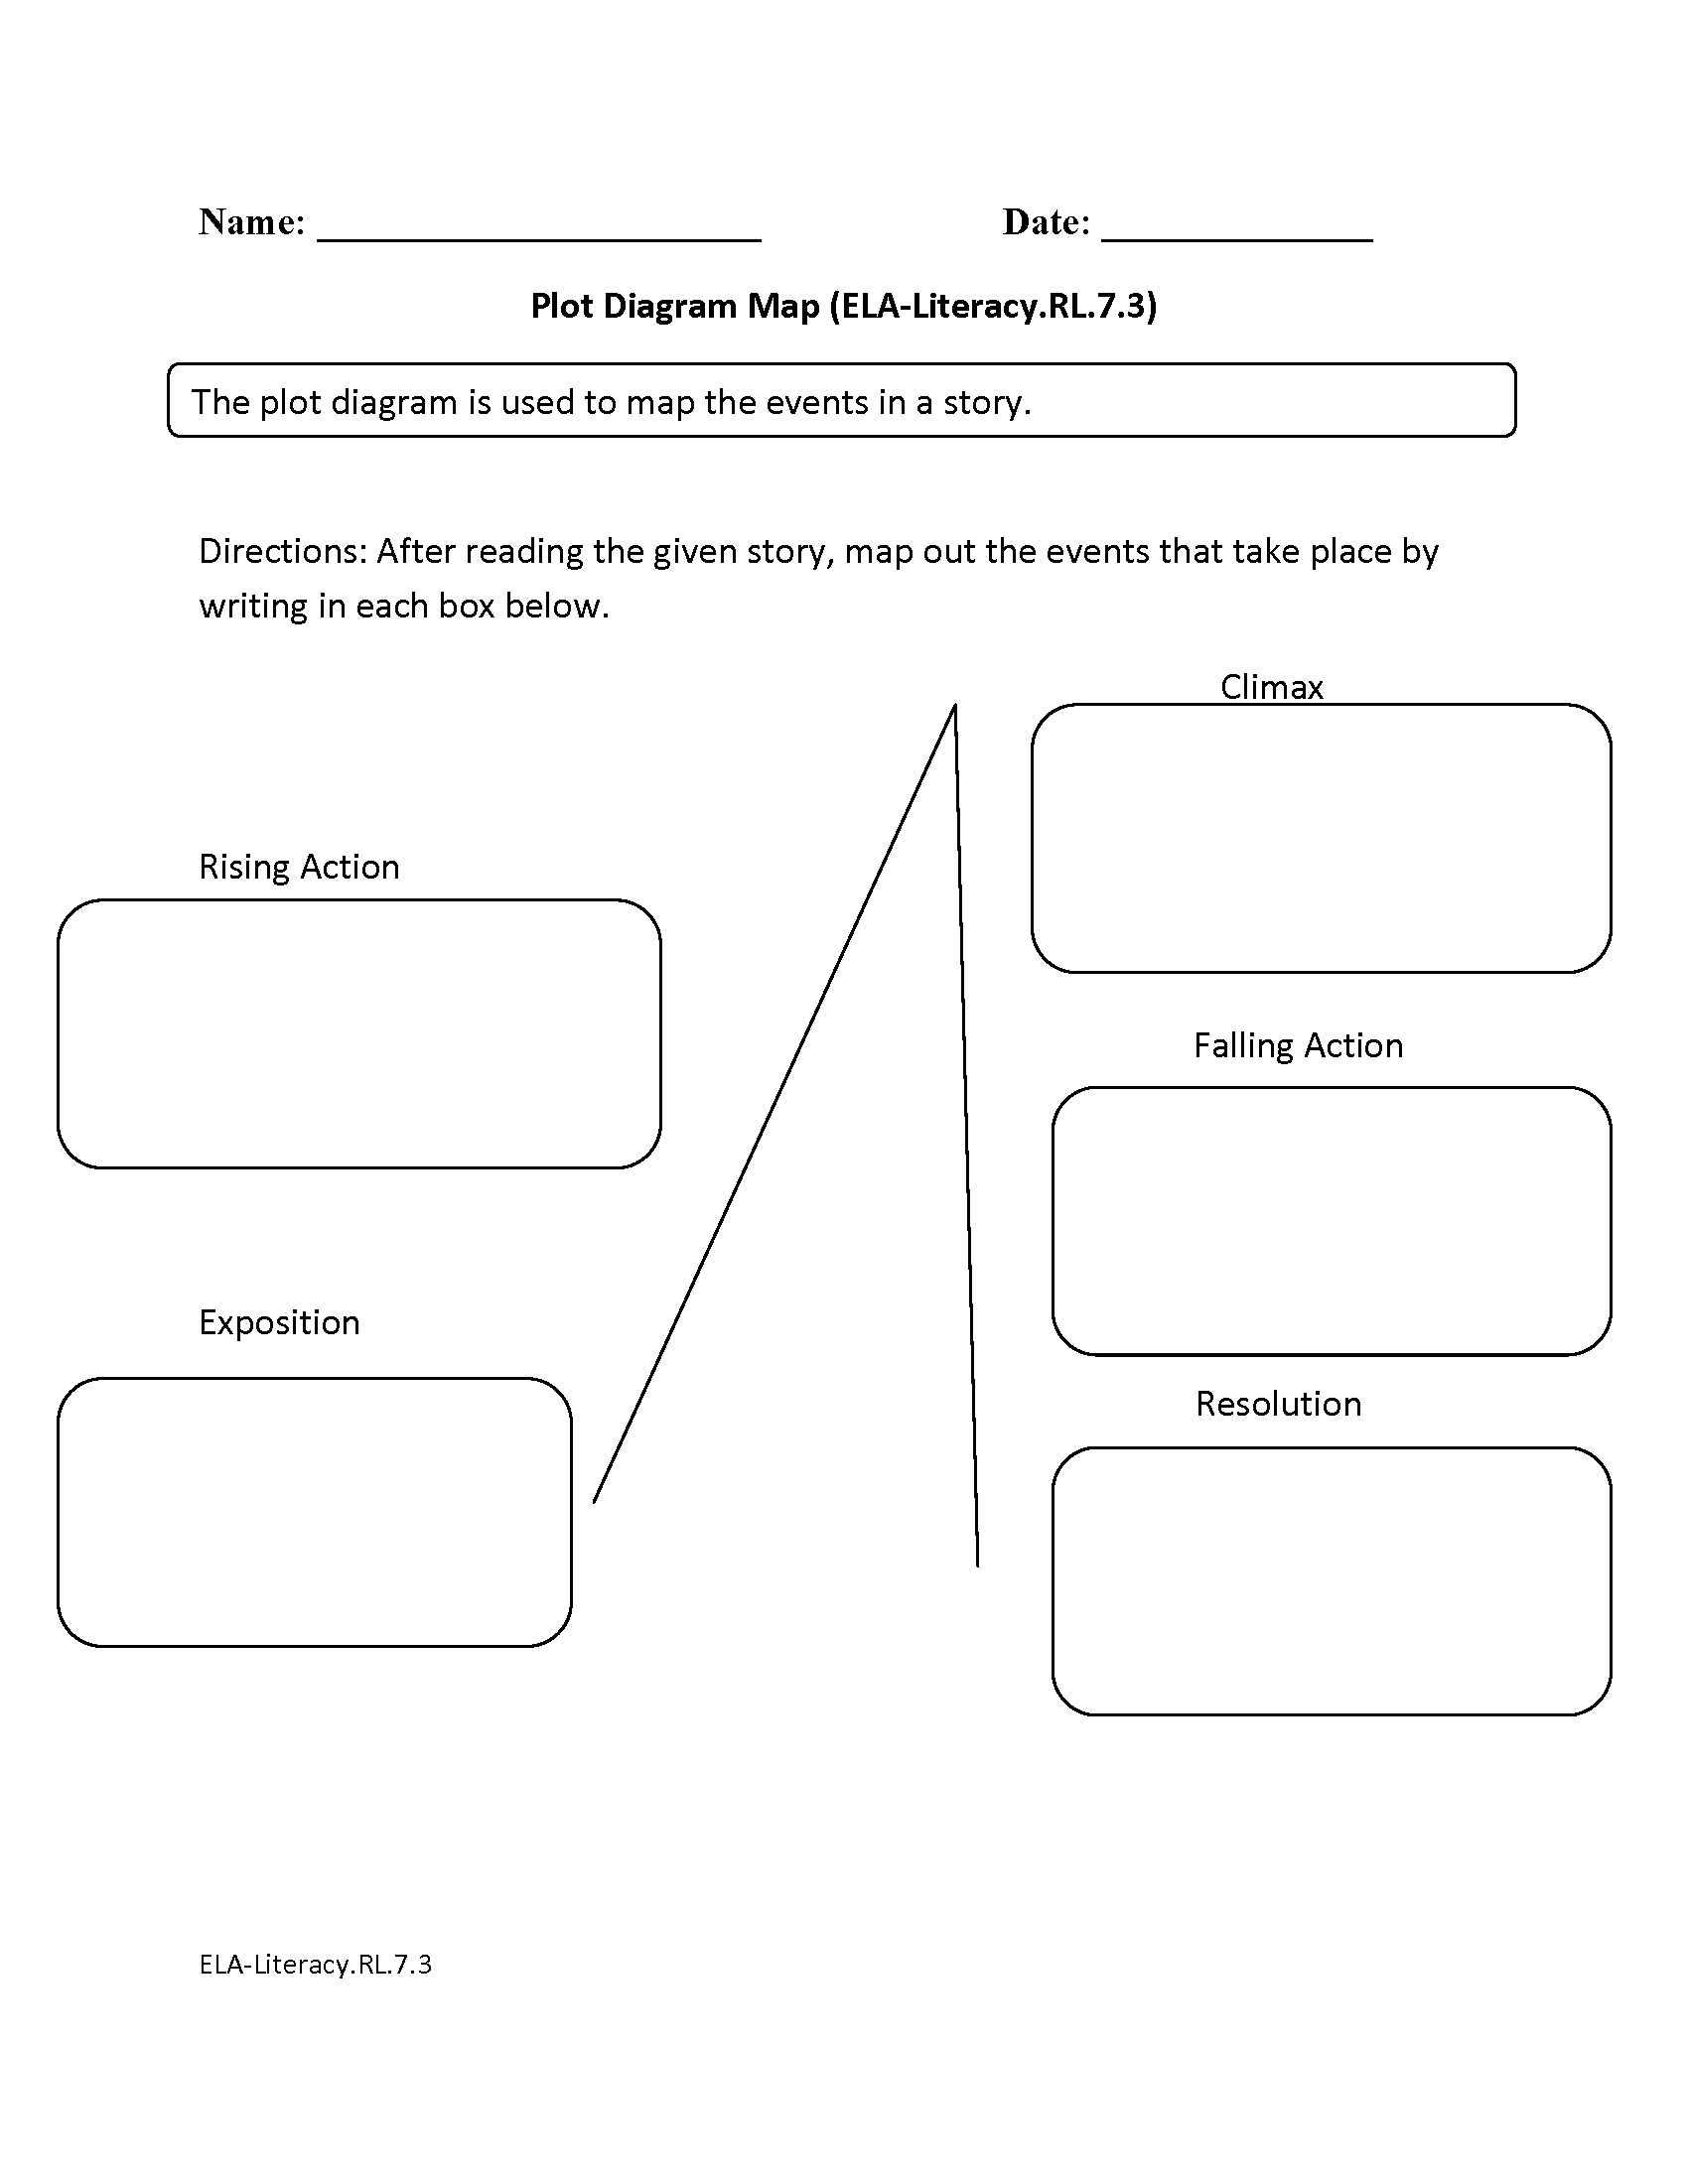 worksheet Common Core Writing Worksheets plot diagram map ela literacy rl 7 3 reading literature worksheet english worksheets that are aligned to the grade common core standards for literature